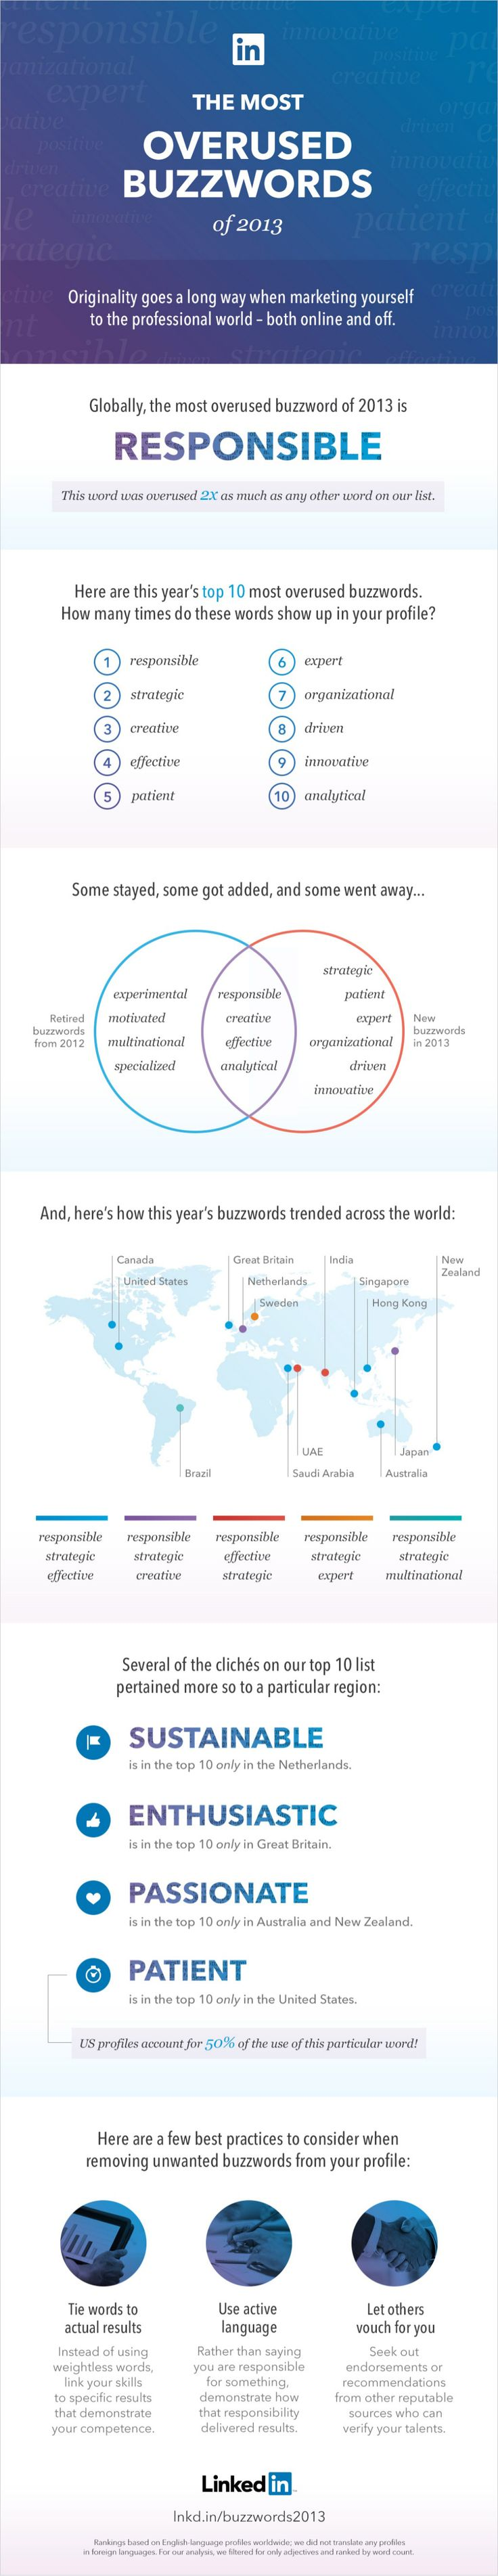 10 Most Overused Buzzwords On Linkedin Infographic